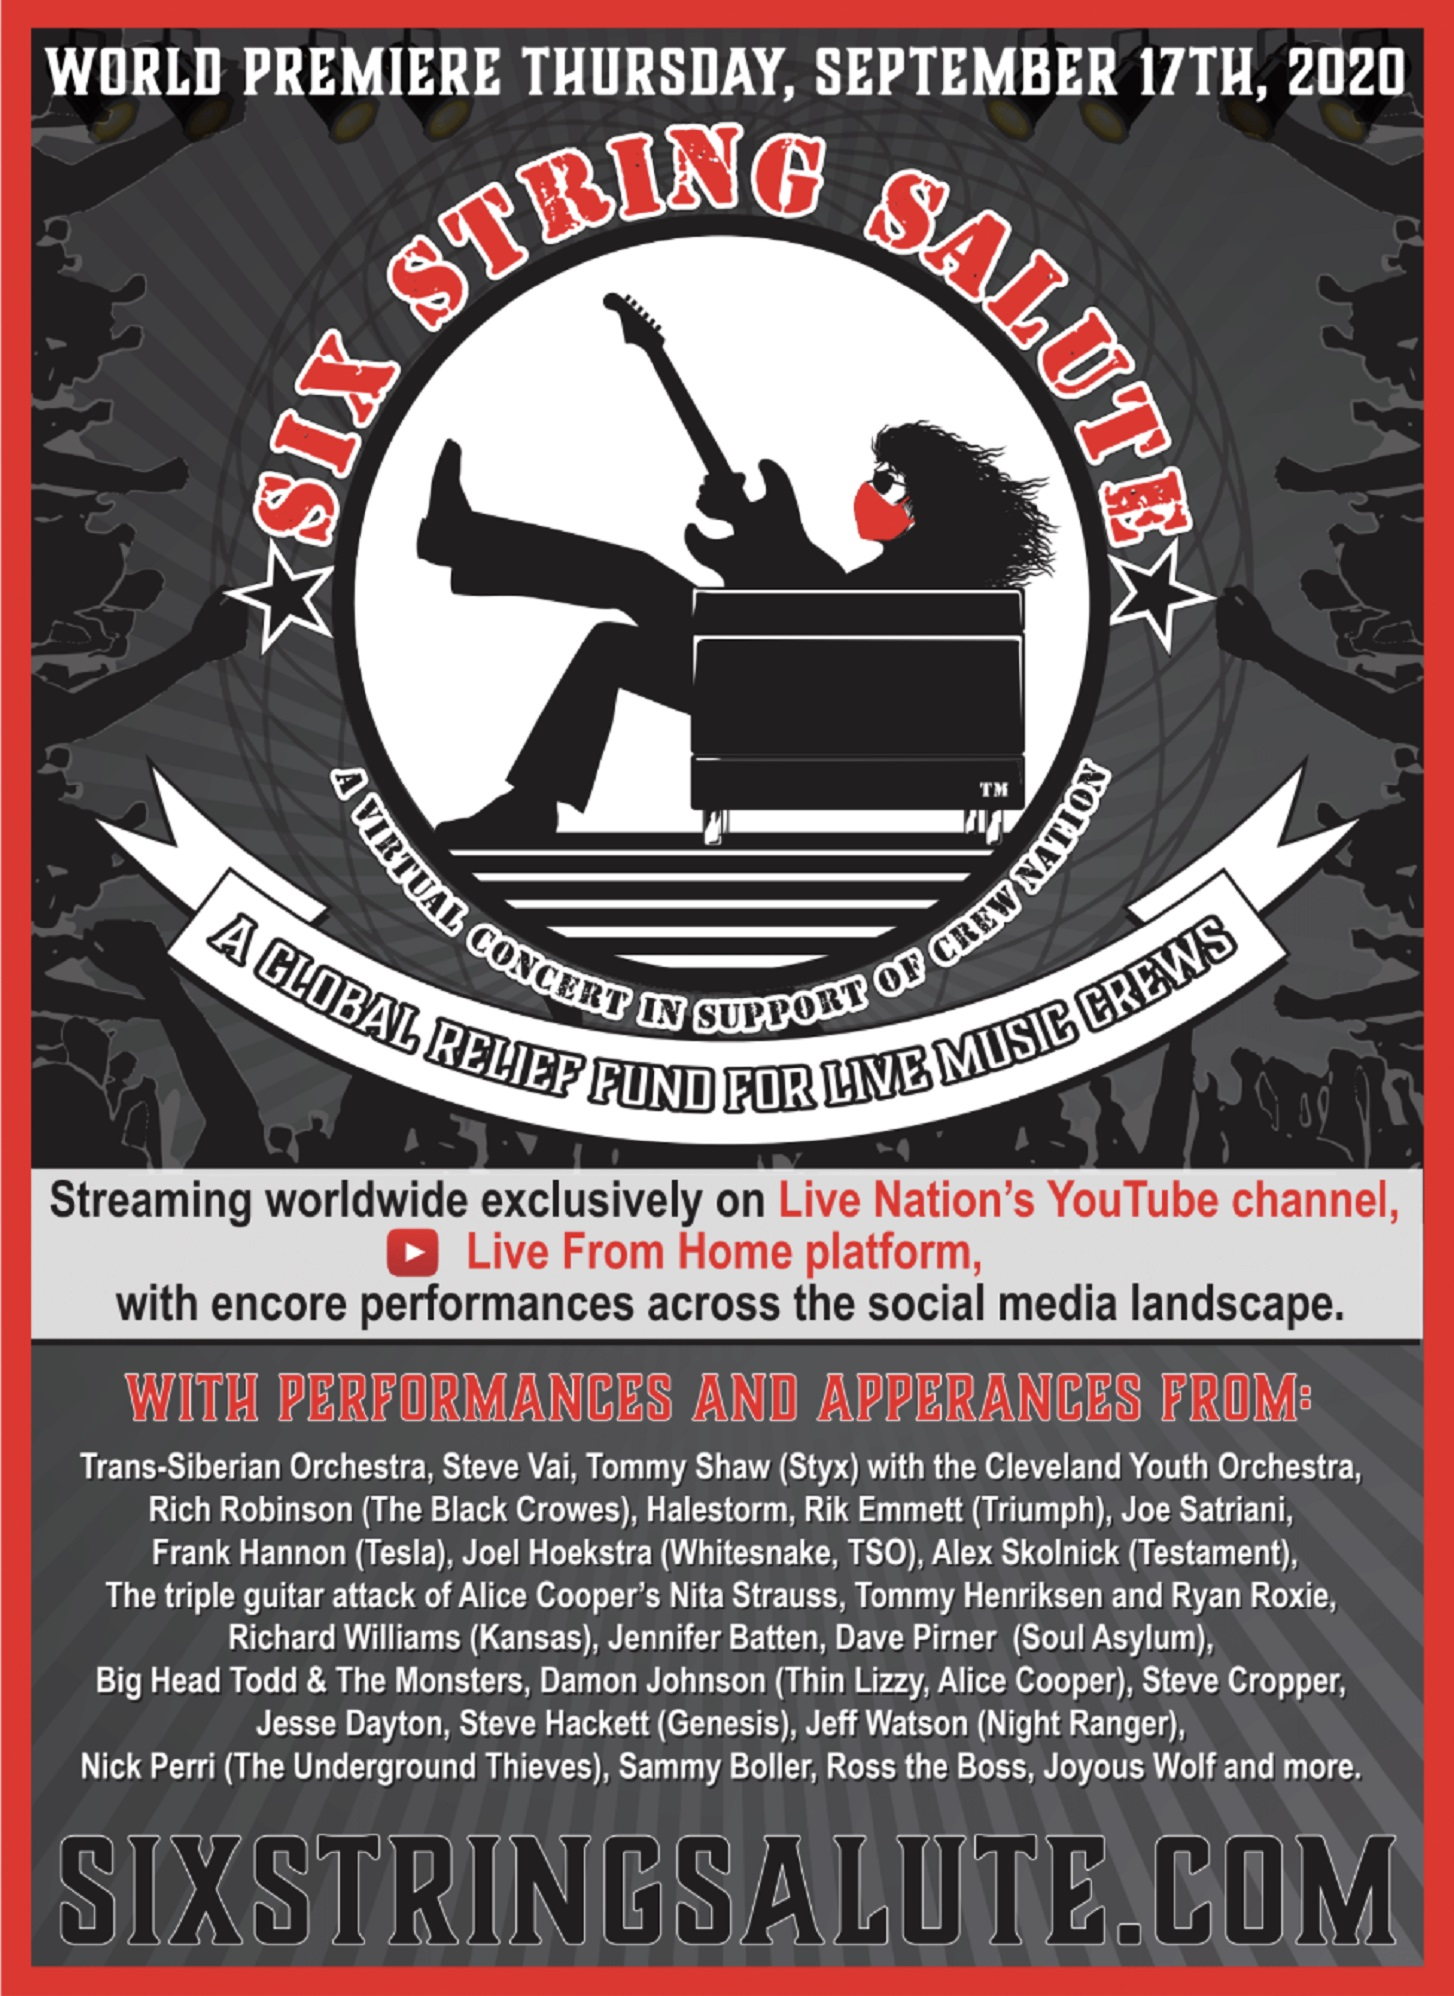 Legendary Guitarists And Musicians To Participate In Six String Salute Virtual Concert!